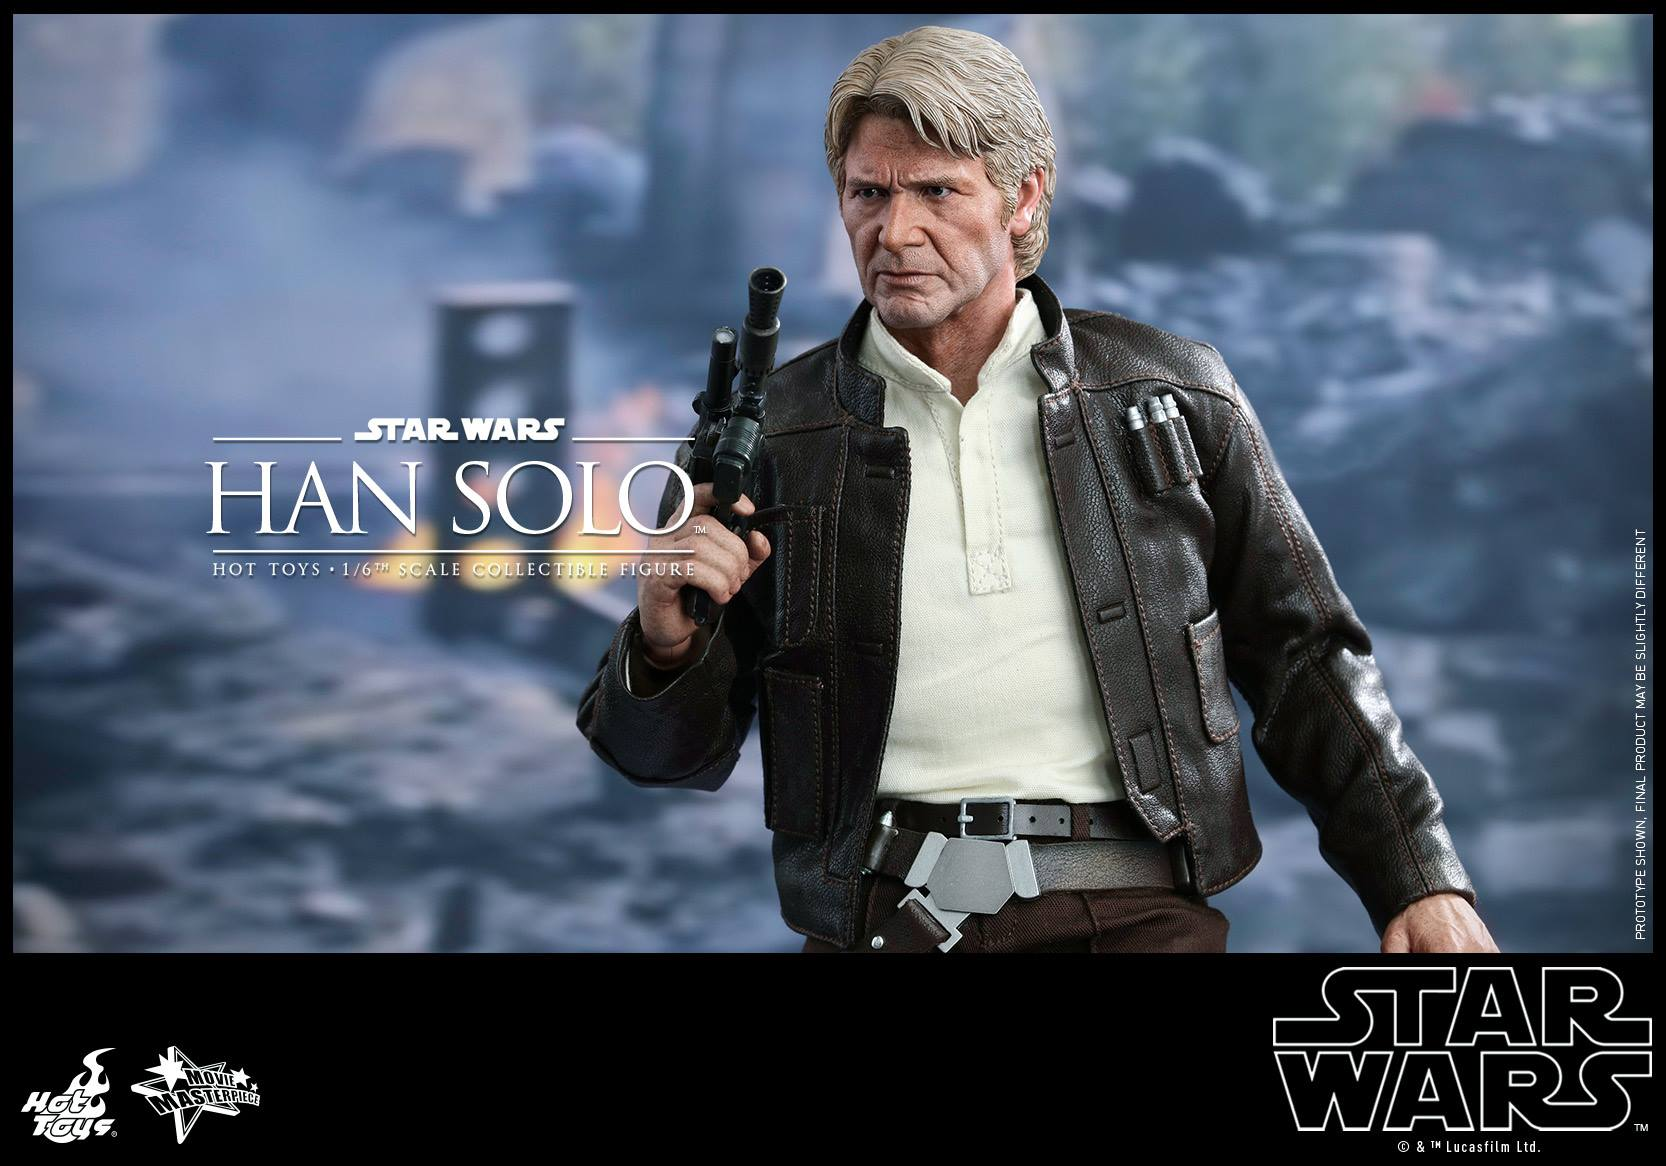 Hot Toys MMS374 STAR WARS: THE FORCE AWAKENS - HAN SOLO